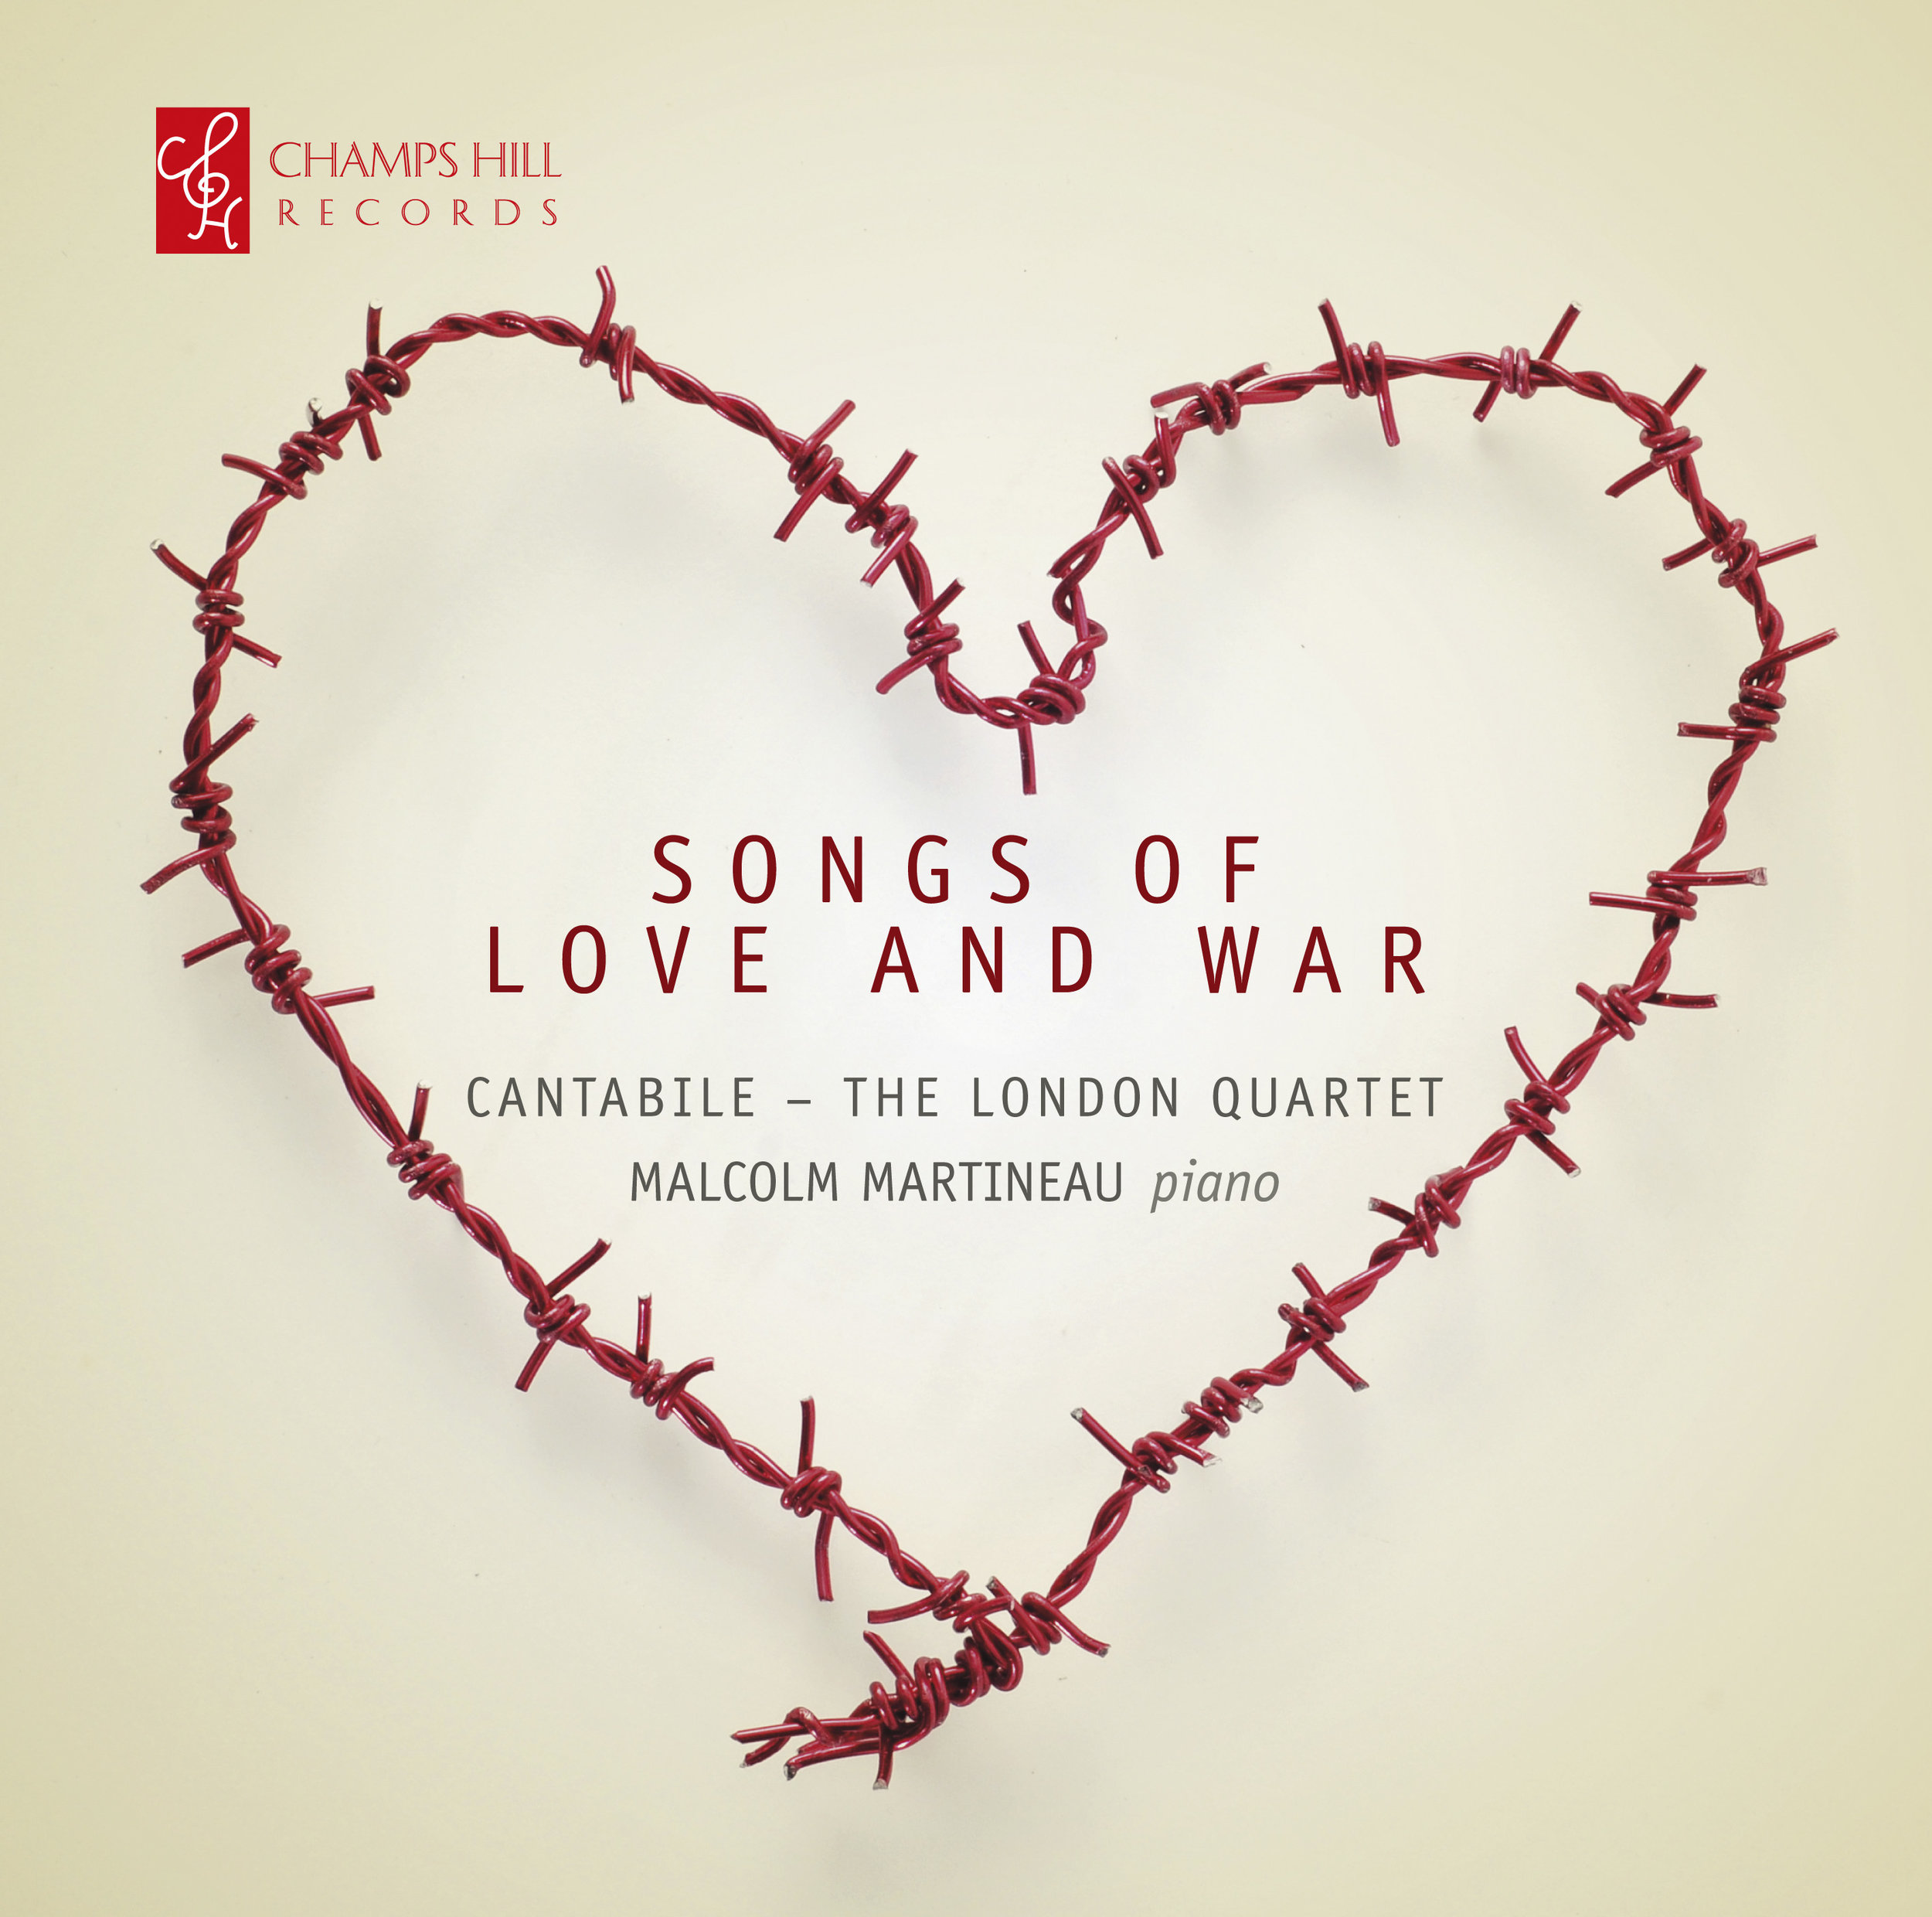 Songs of Love and War (higher resolution – 600dpi).jpg